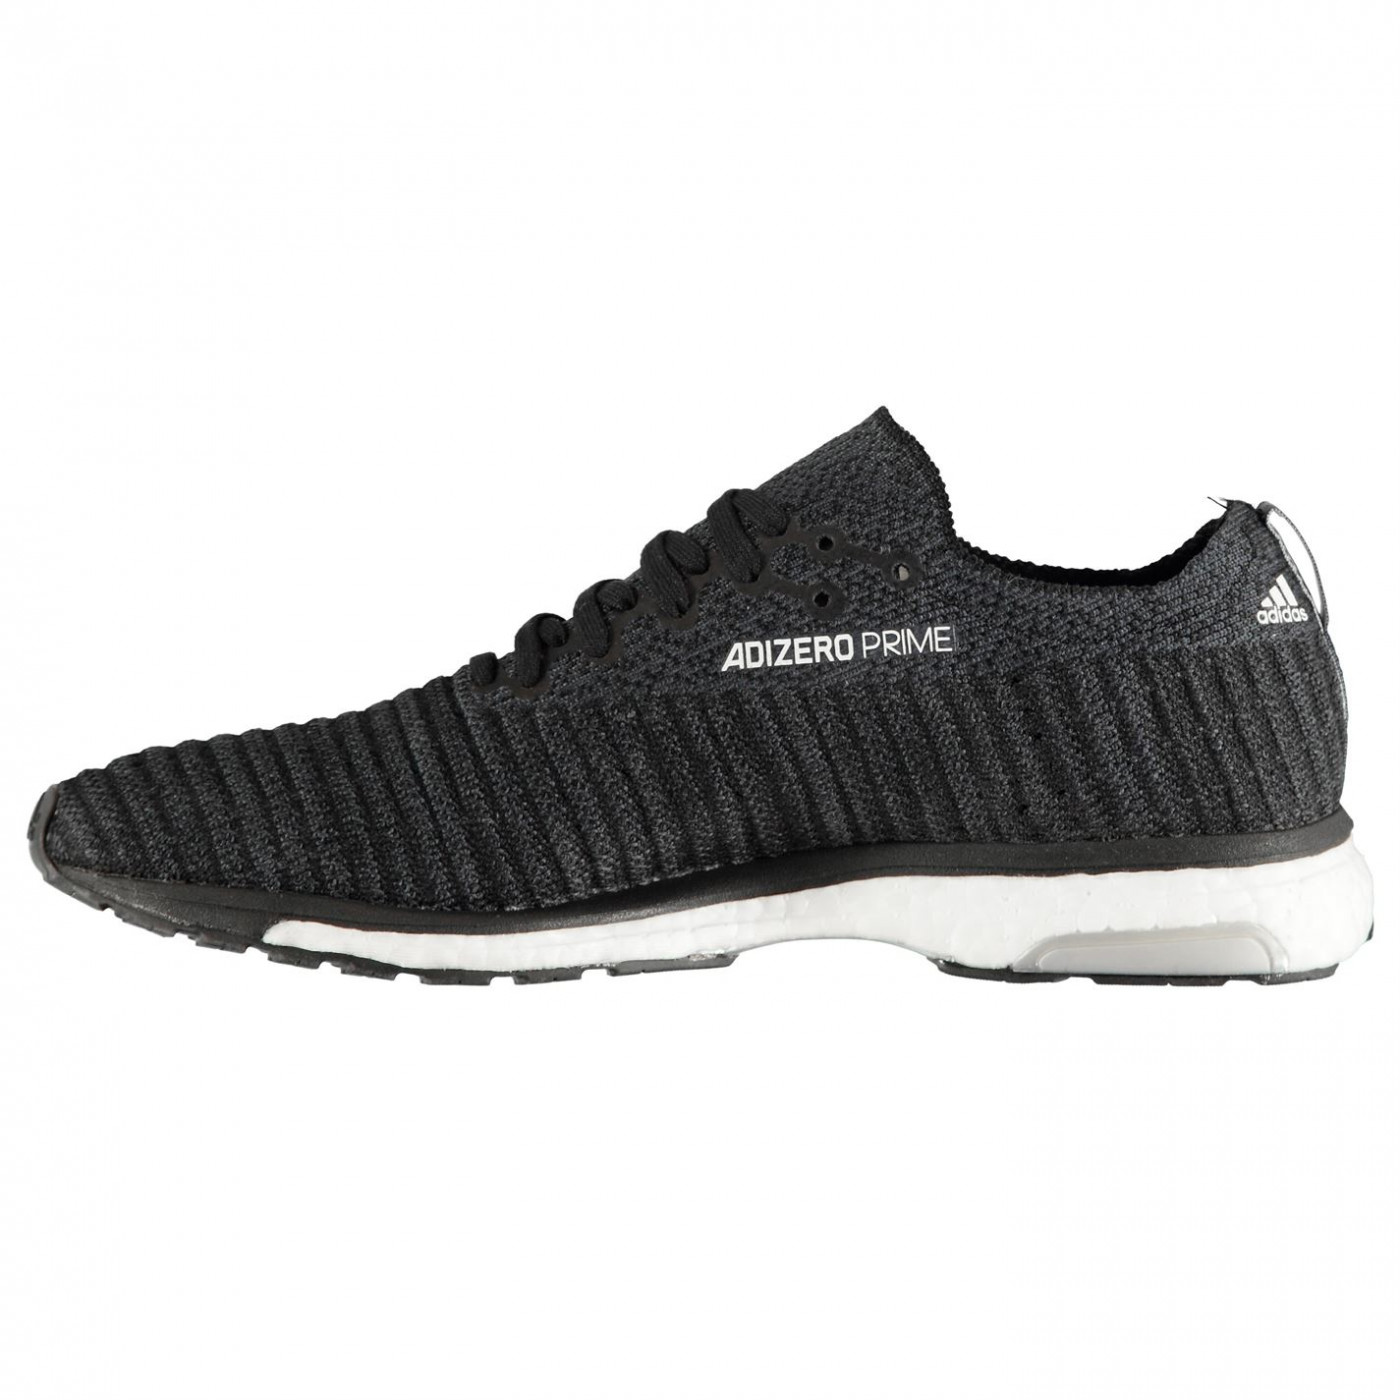 Adidas Adizero Prime Men's Running Shoes